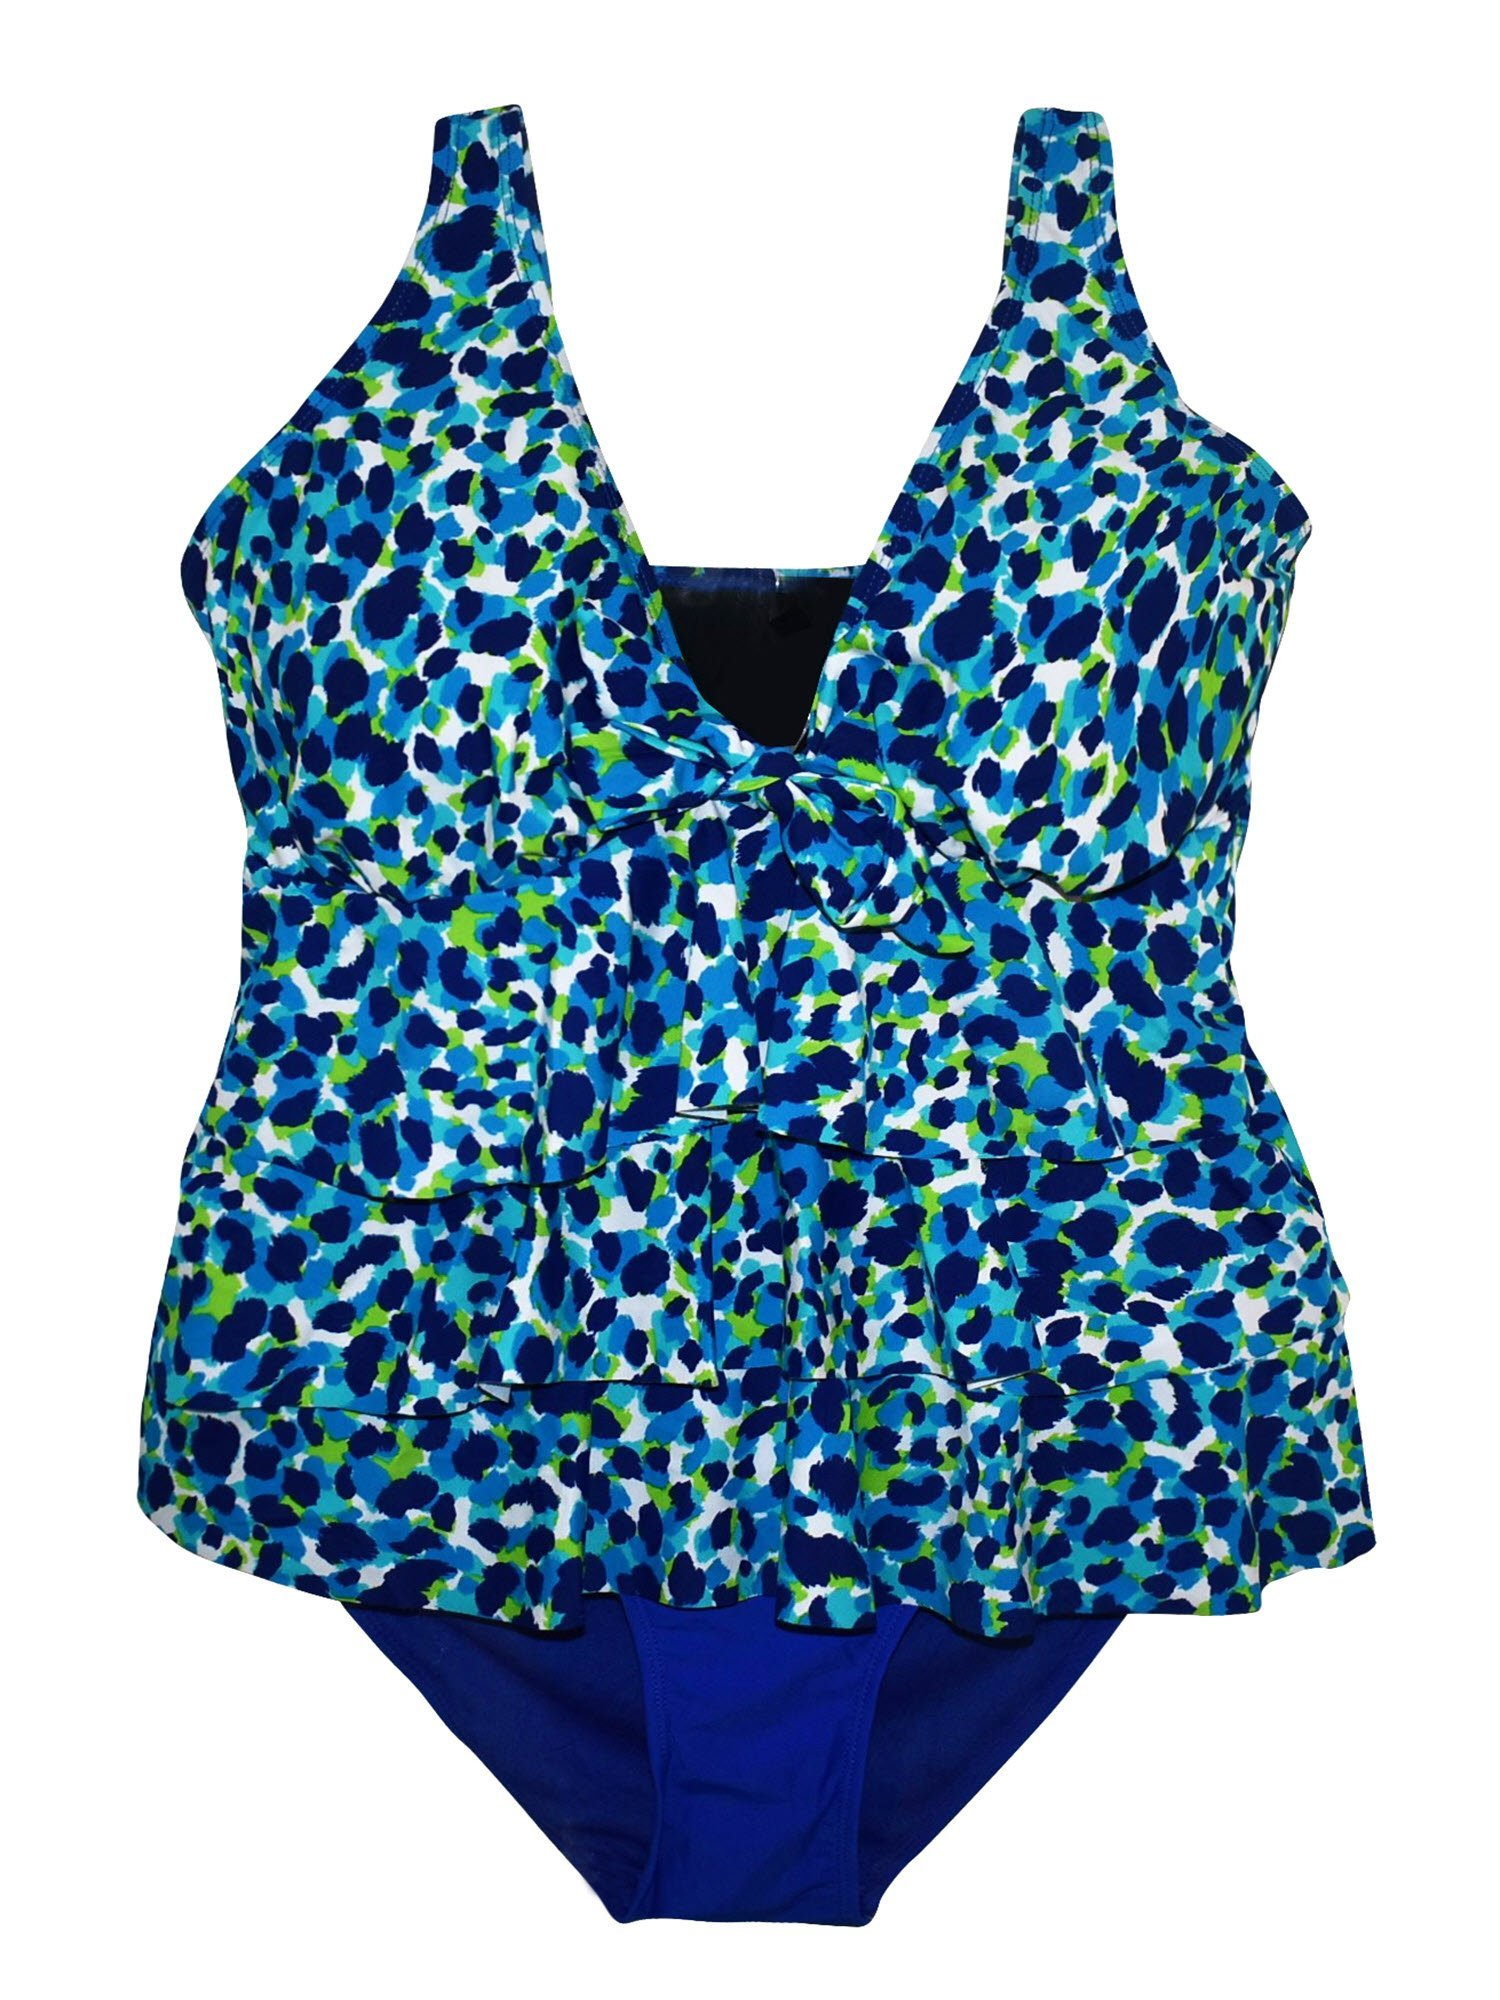 Simply Fit Women's Plus Size Tankini Bikini Swimsuit Set Tiered Ruffle 16-24